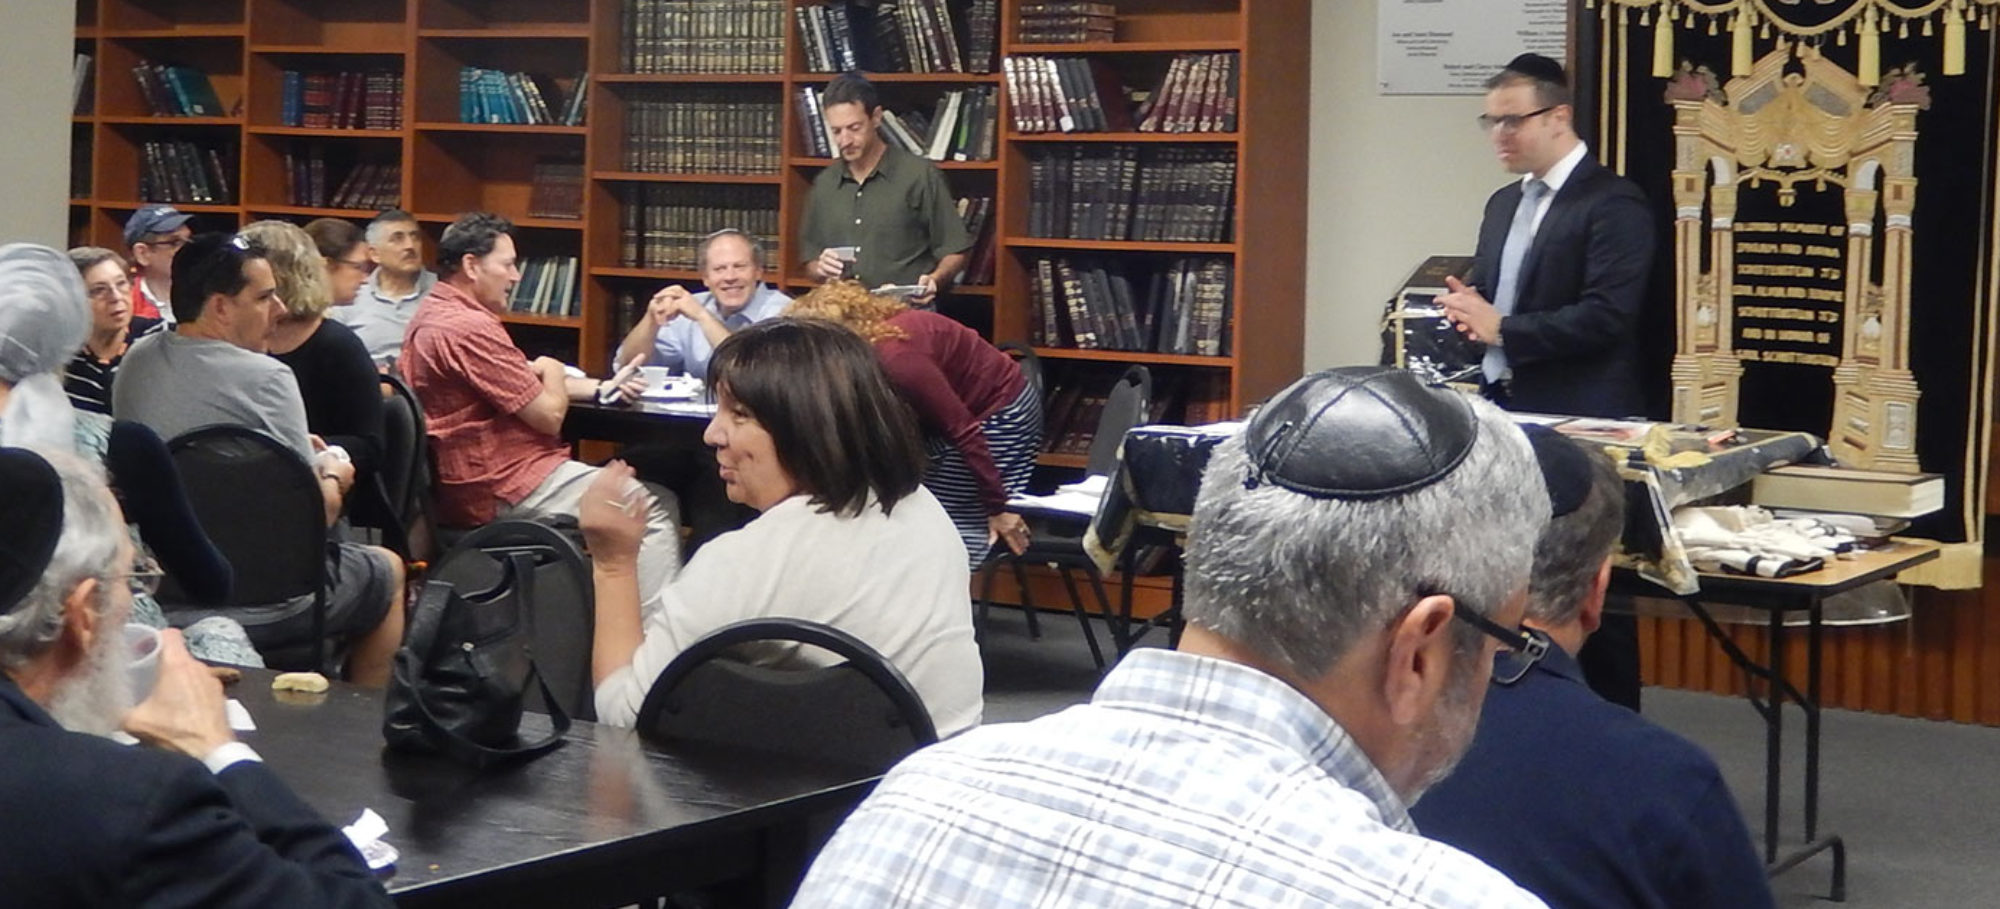 The Columbus Community Kollel